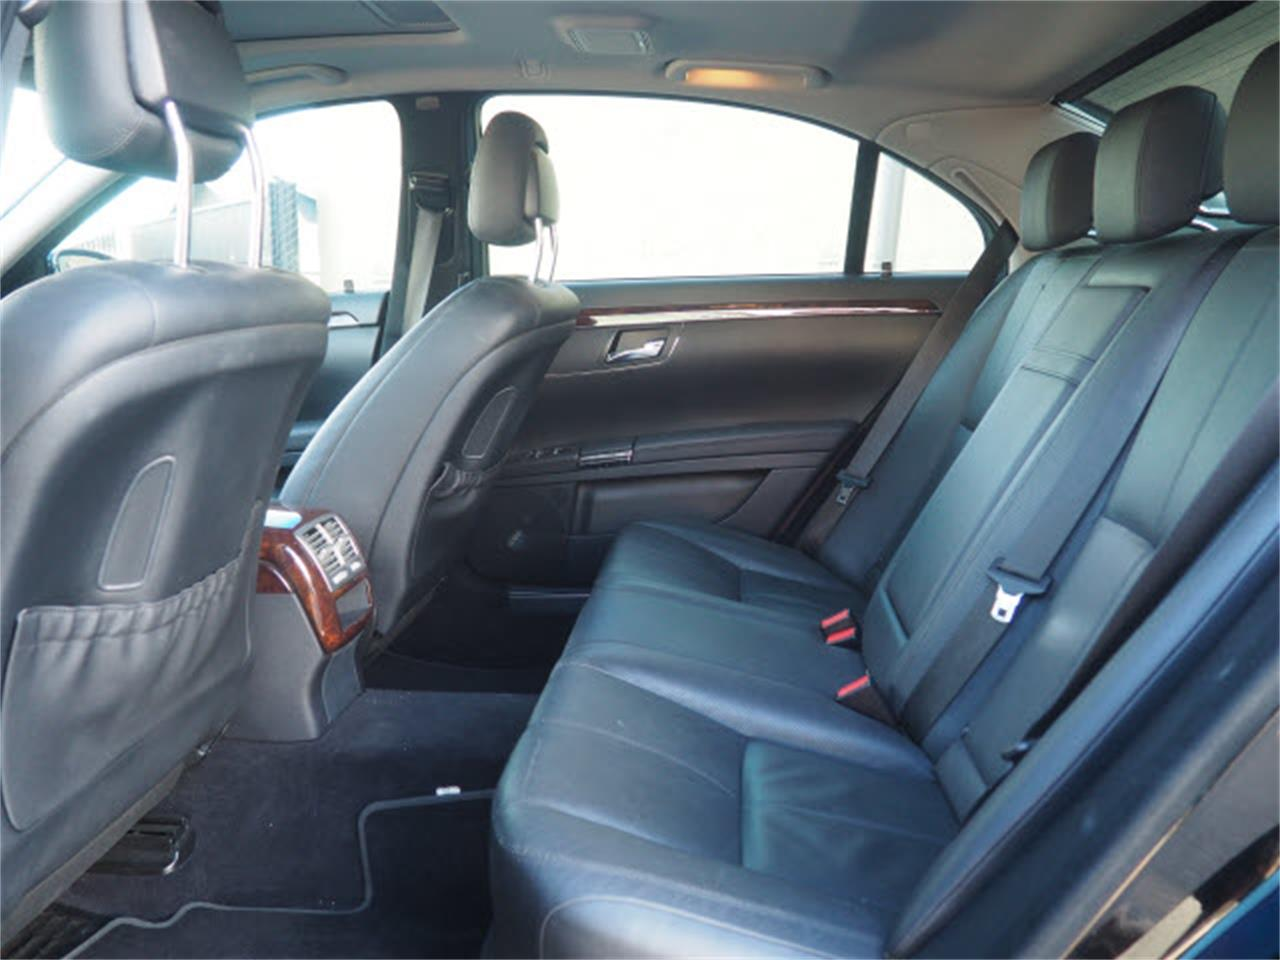 2009 Mercedes-Benz S-Class (CC-1294140) for sale in Tacoma, Washington